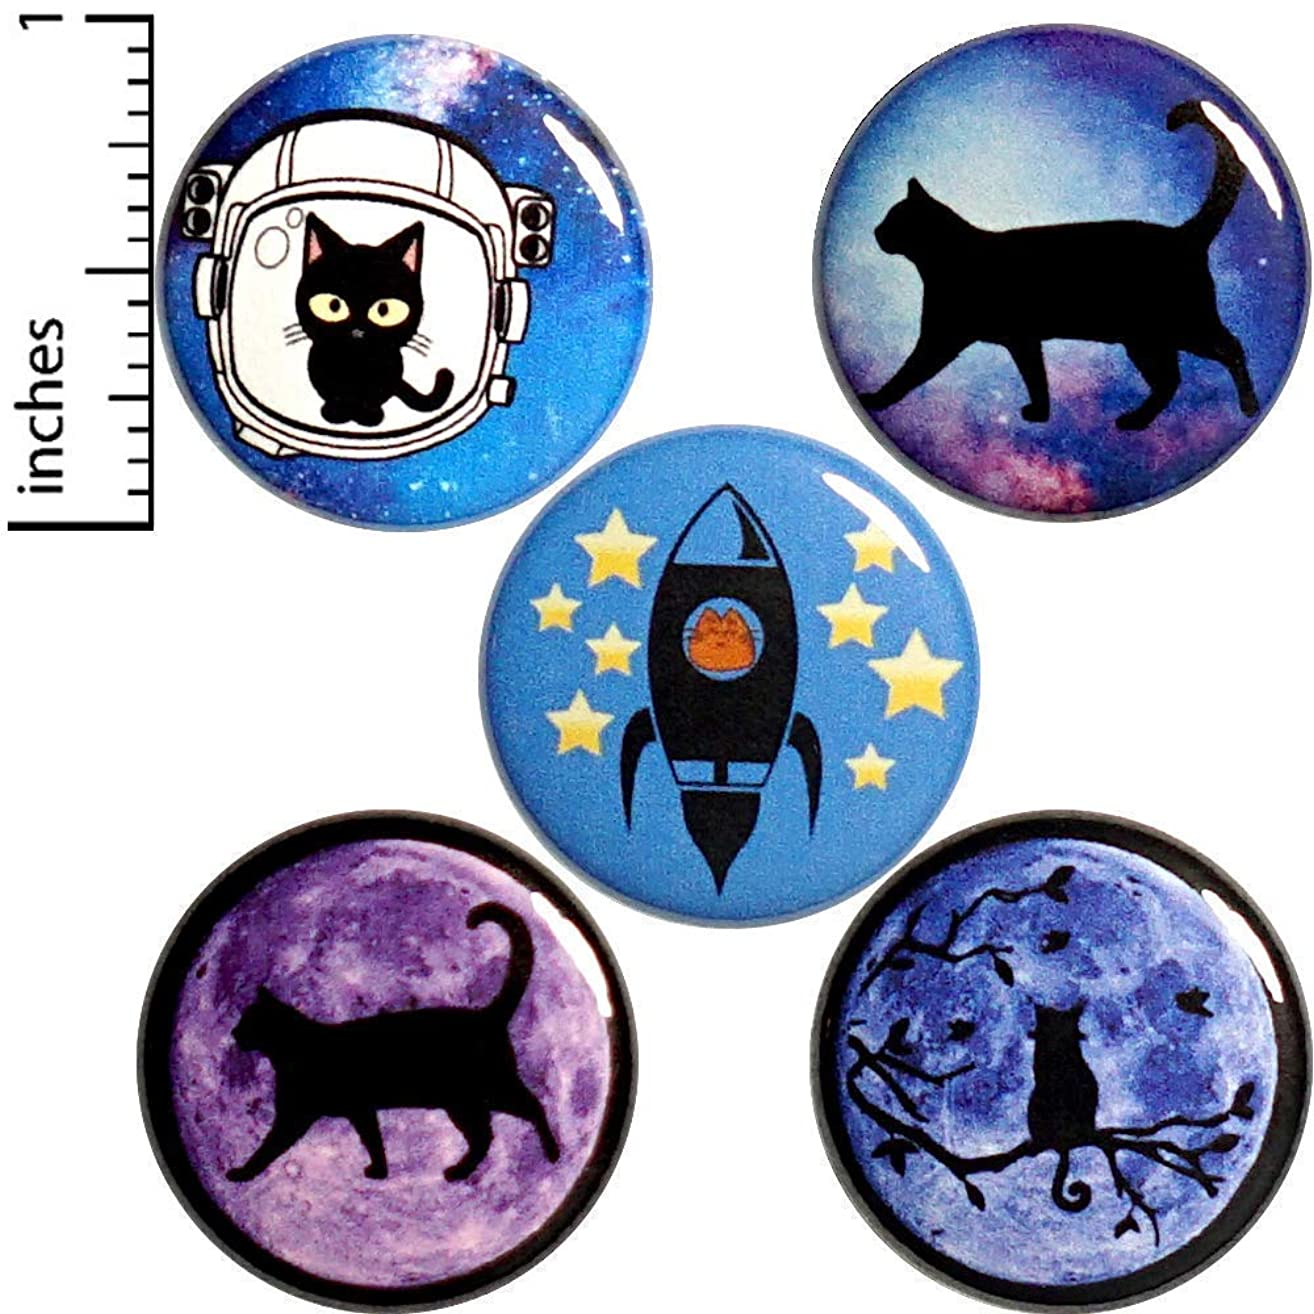 Cat Button 5 Pack Pins or Magnets 1 Inch P18-2